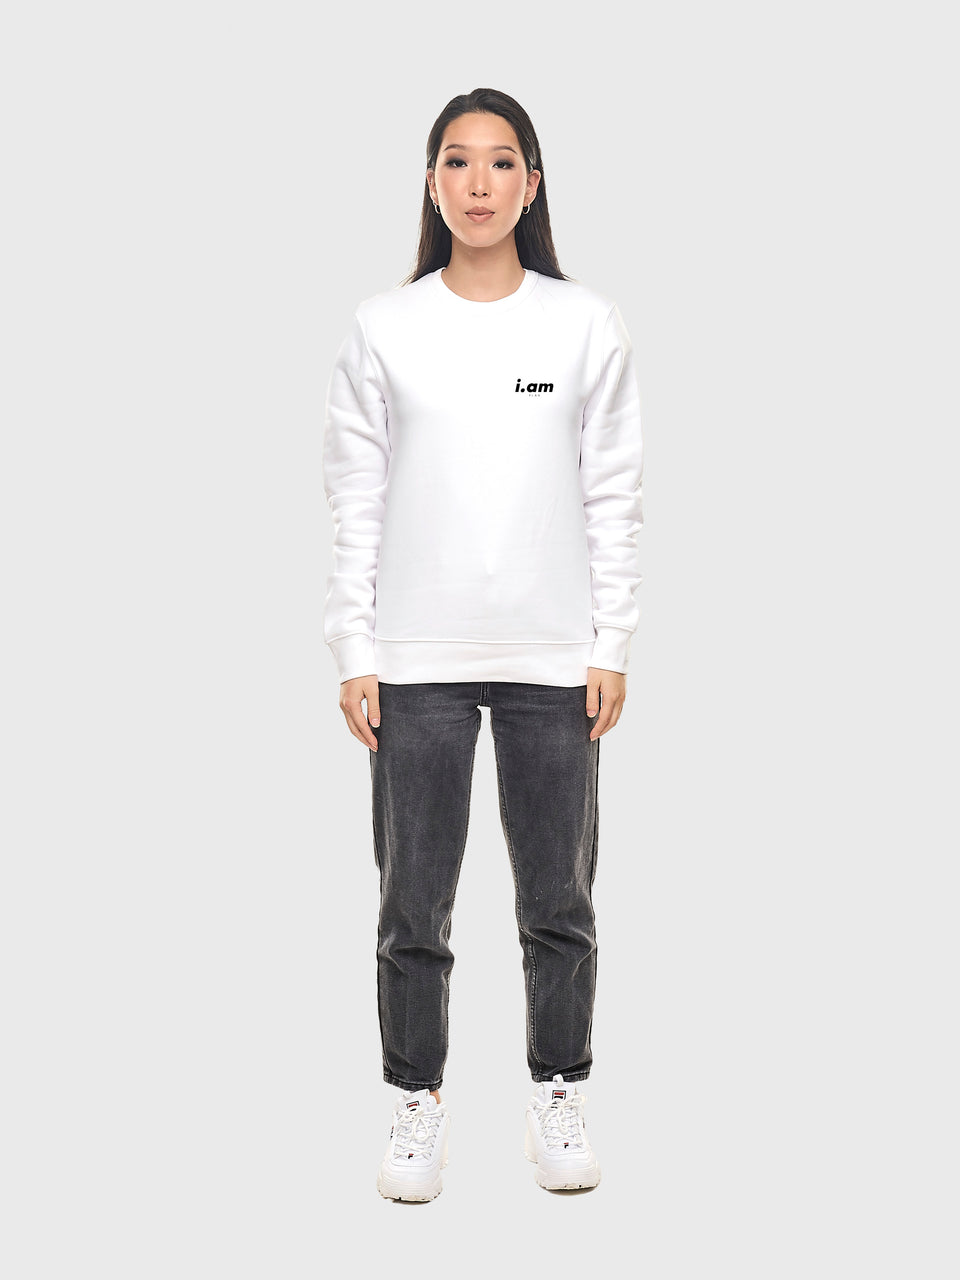 Not a copy - White / Grey - Unisex sweatshirt